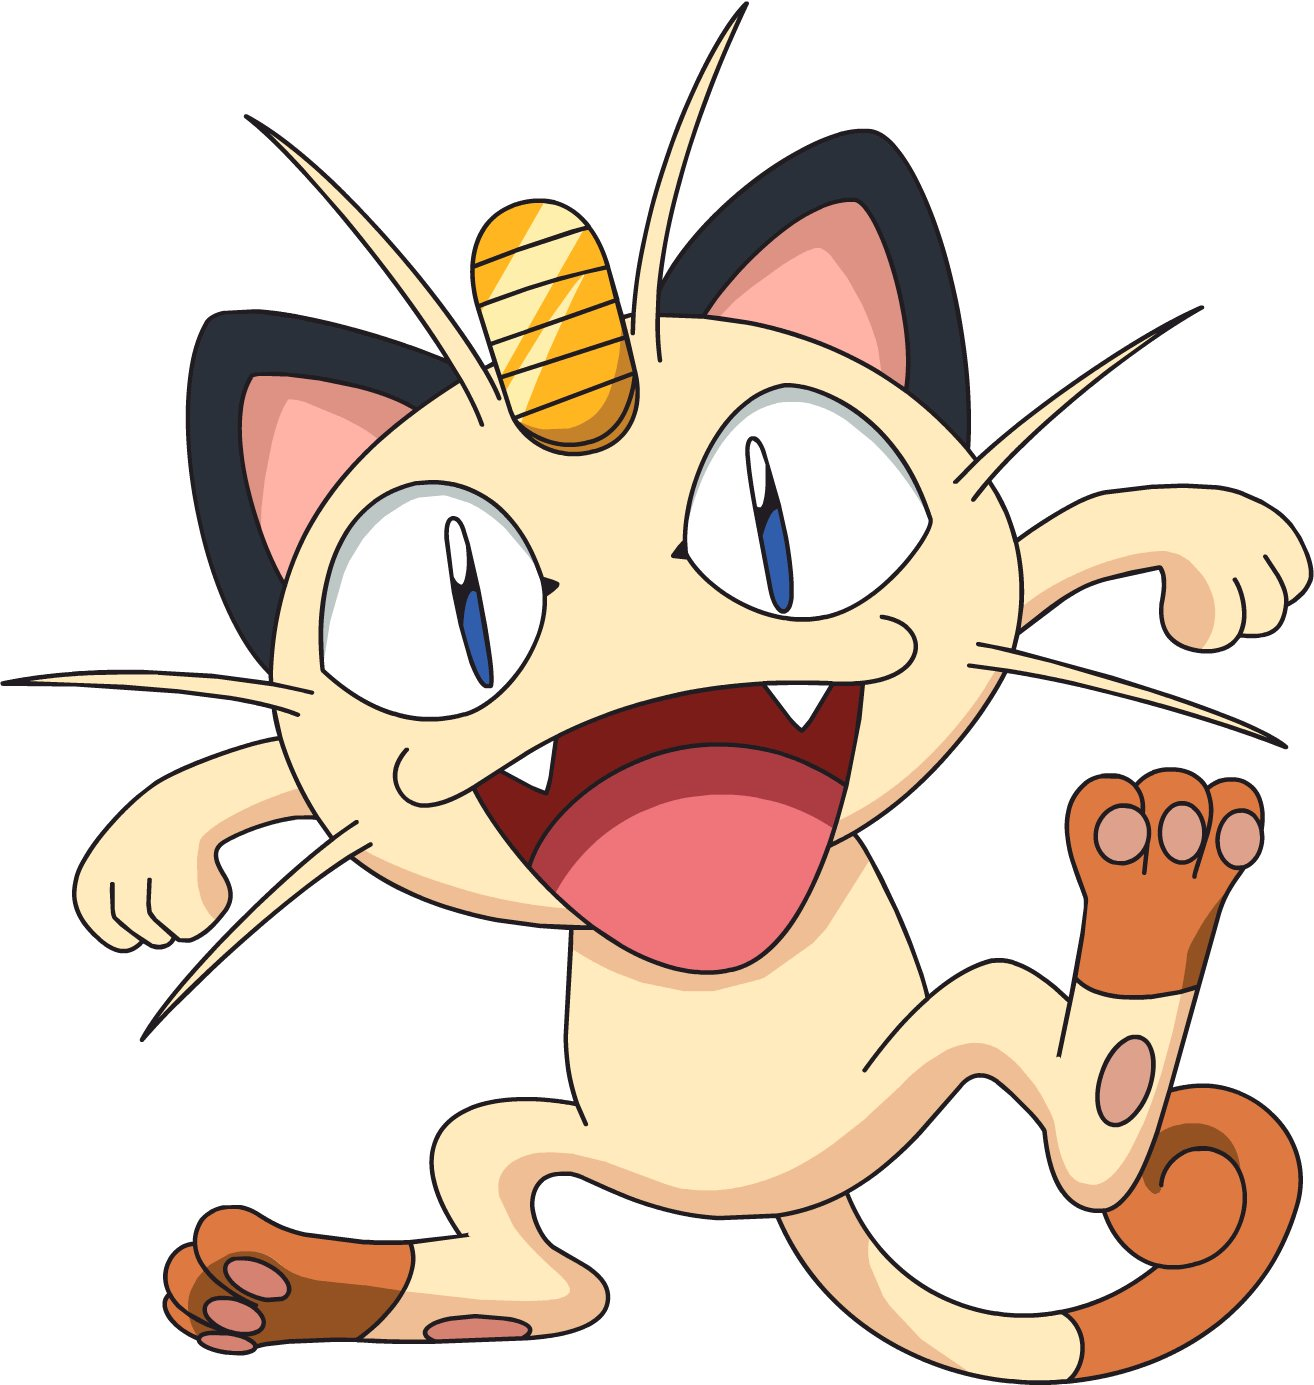 Pokemon Meowth Evoluti...